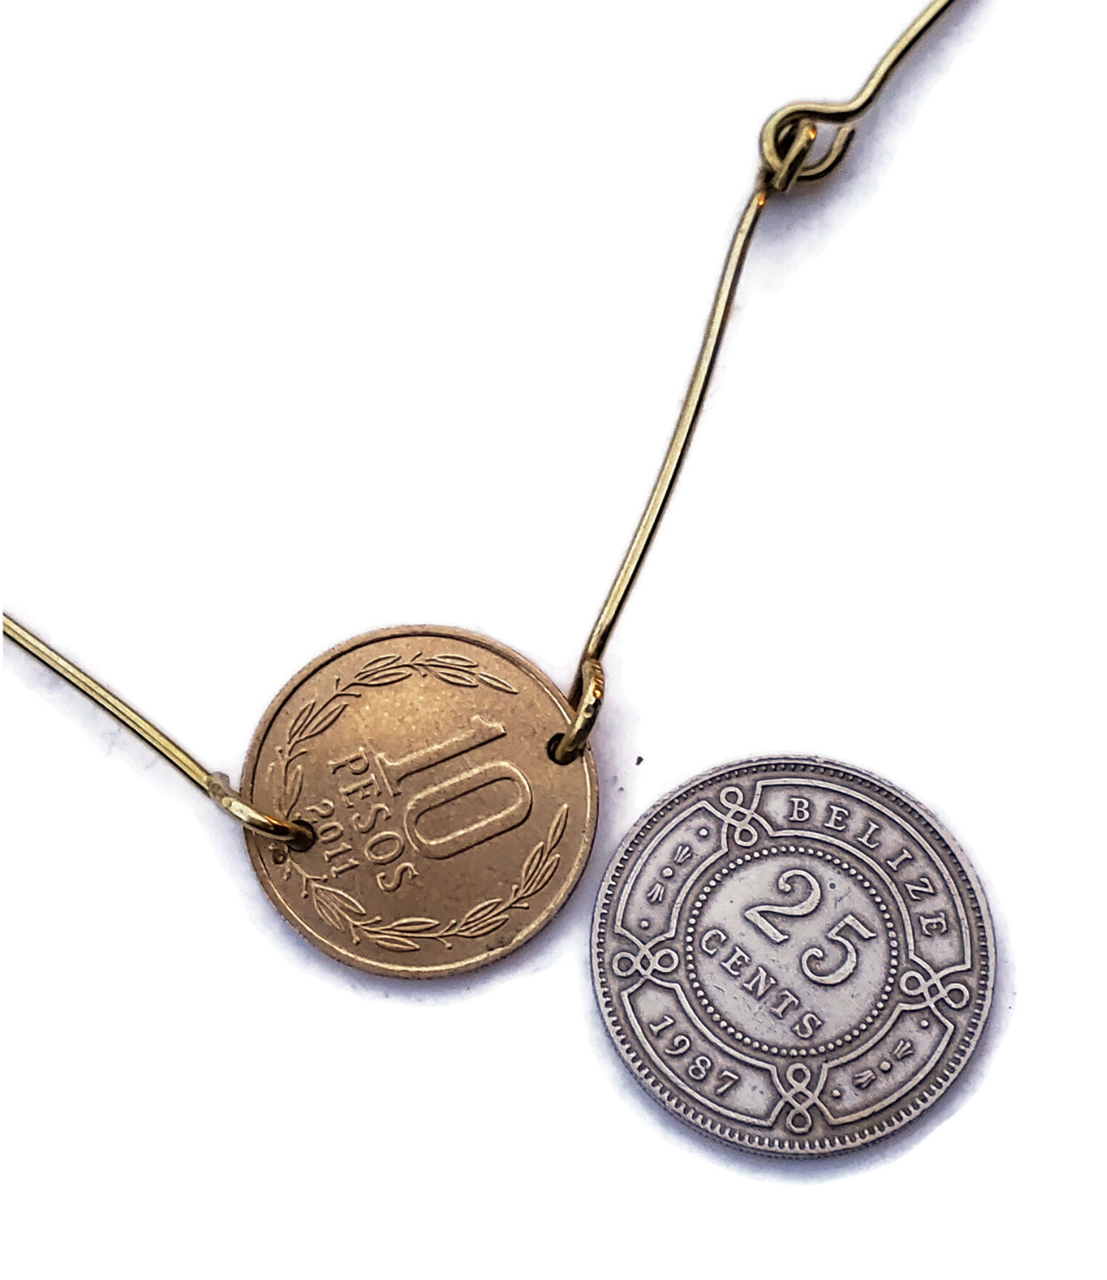 choose silver or gold coin for brass bar necklace